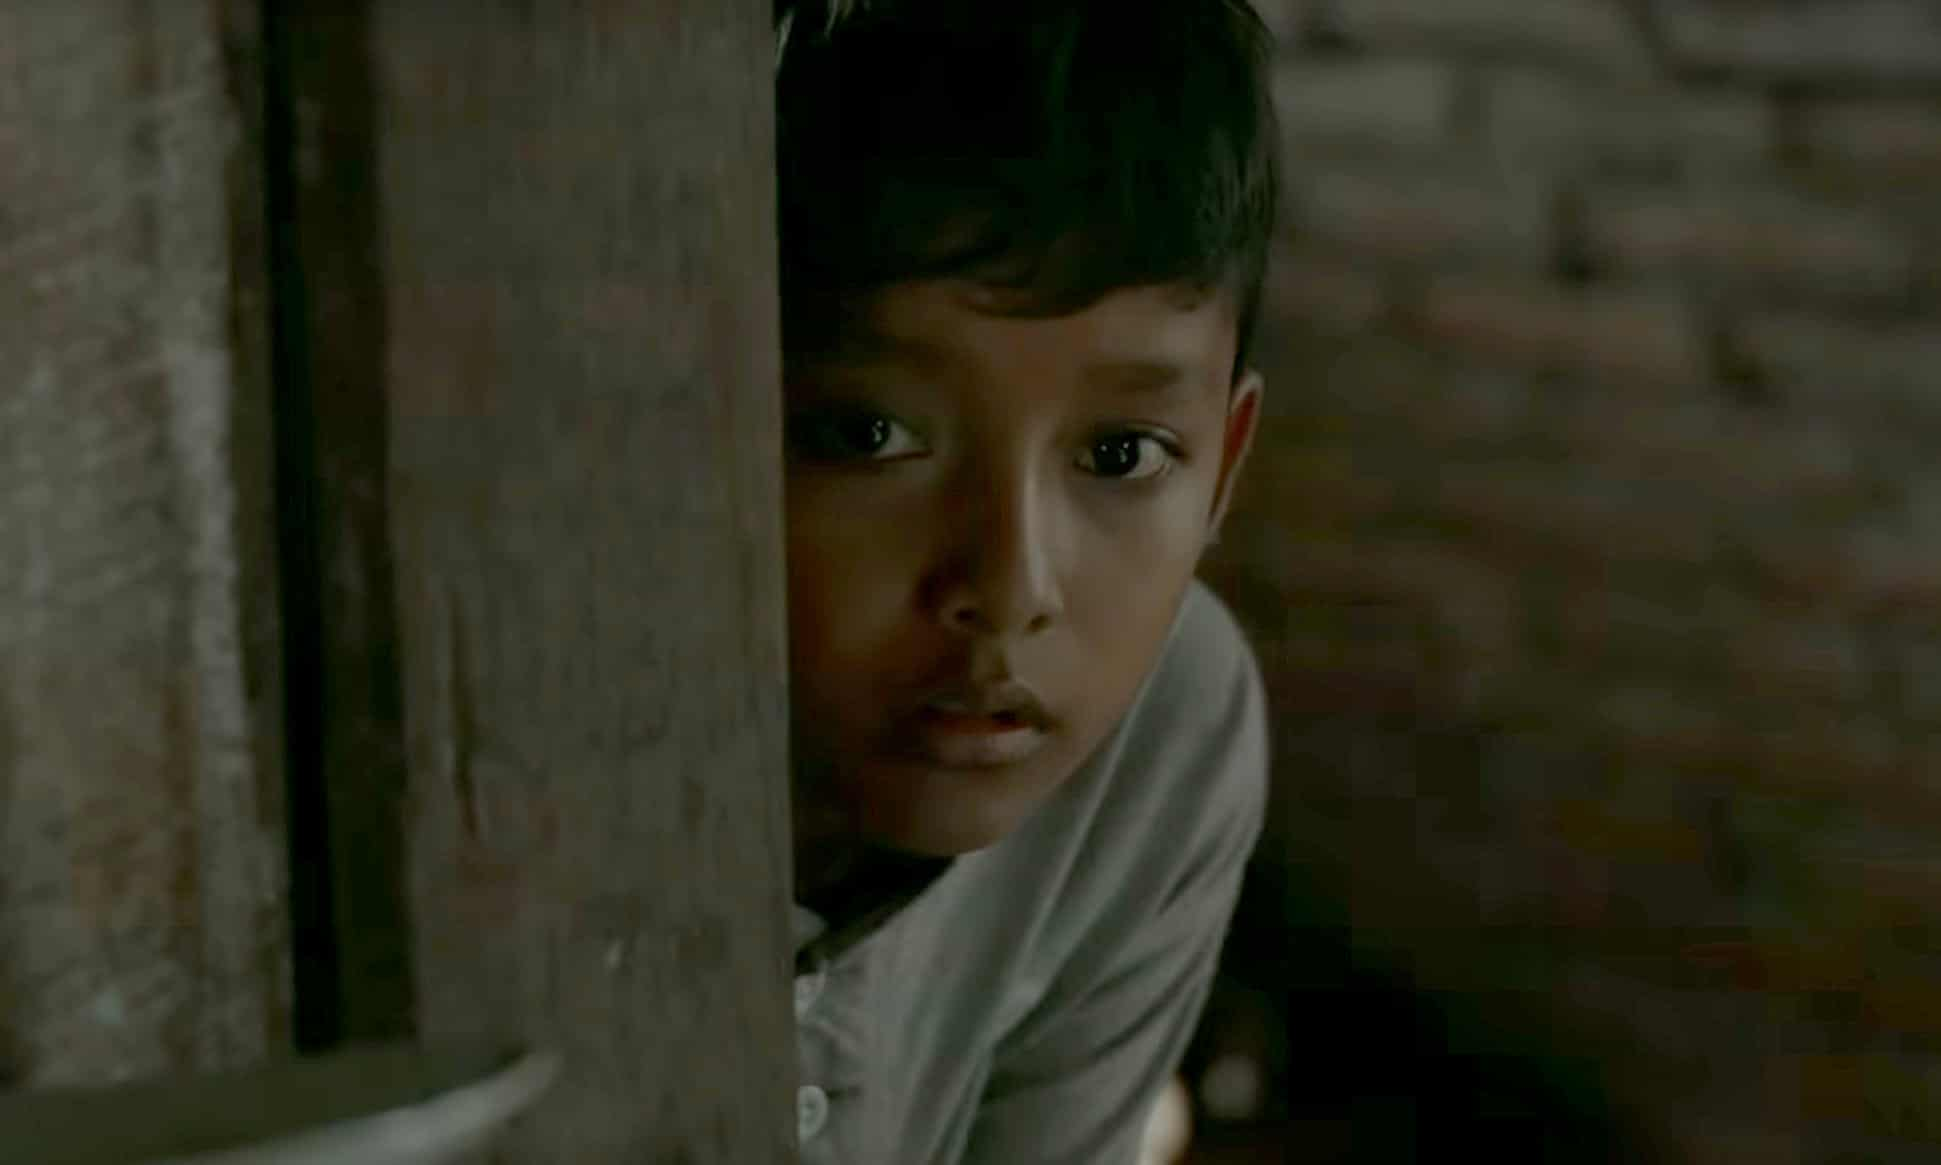 A still from Garin Nugroho's Memories of My Body, based on the life of choreographer and dancer Rianto